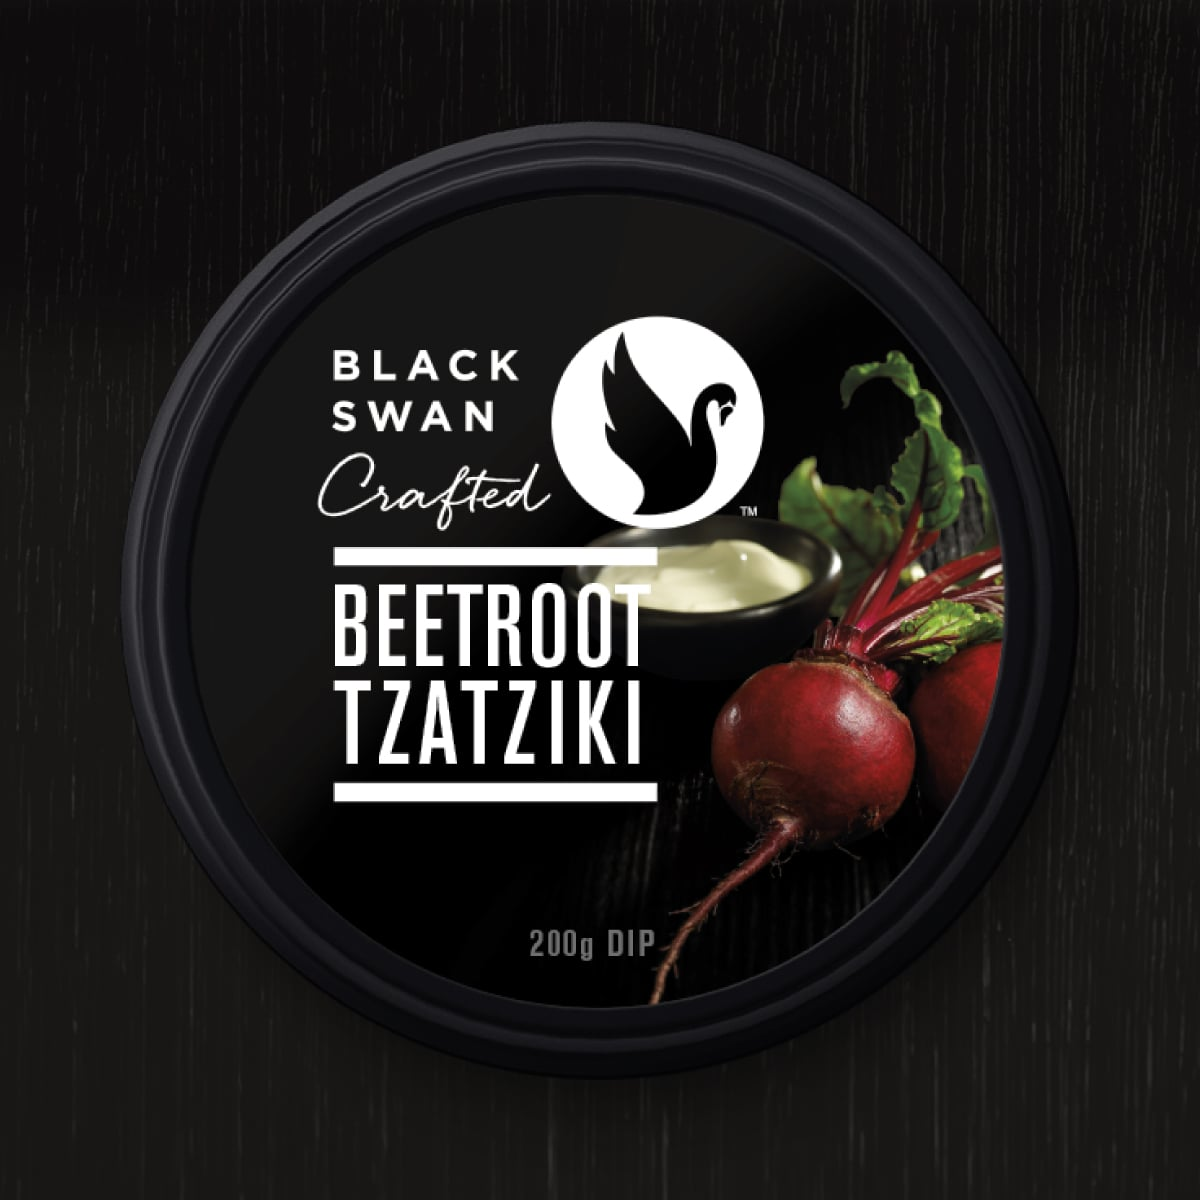 Davidson Branding FMCG Black Swan Crafted Packaging Beetroot Tzatziki